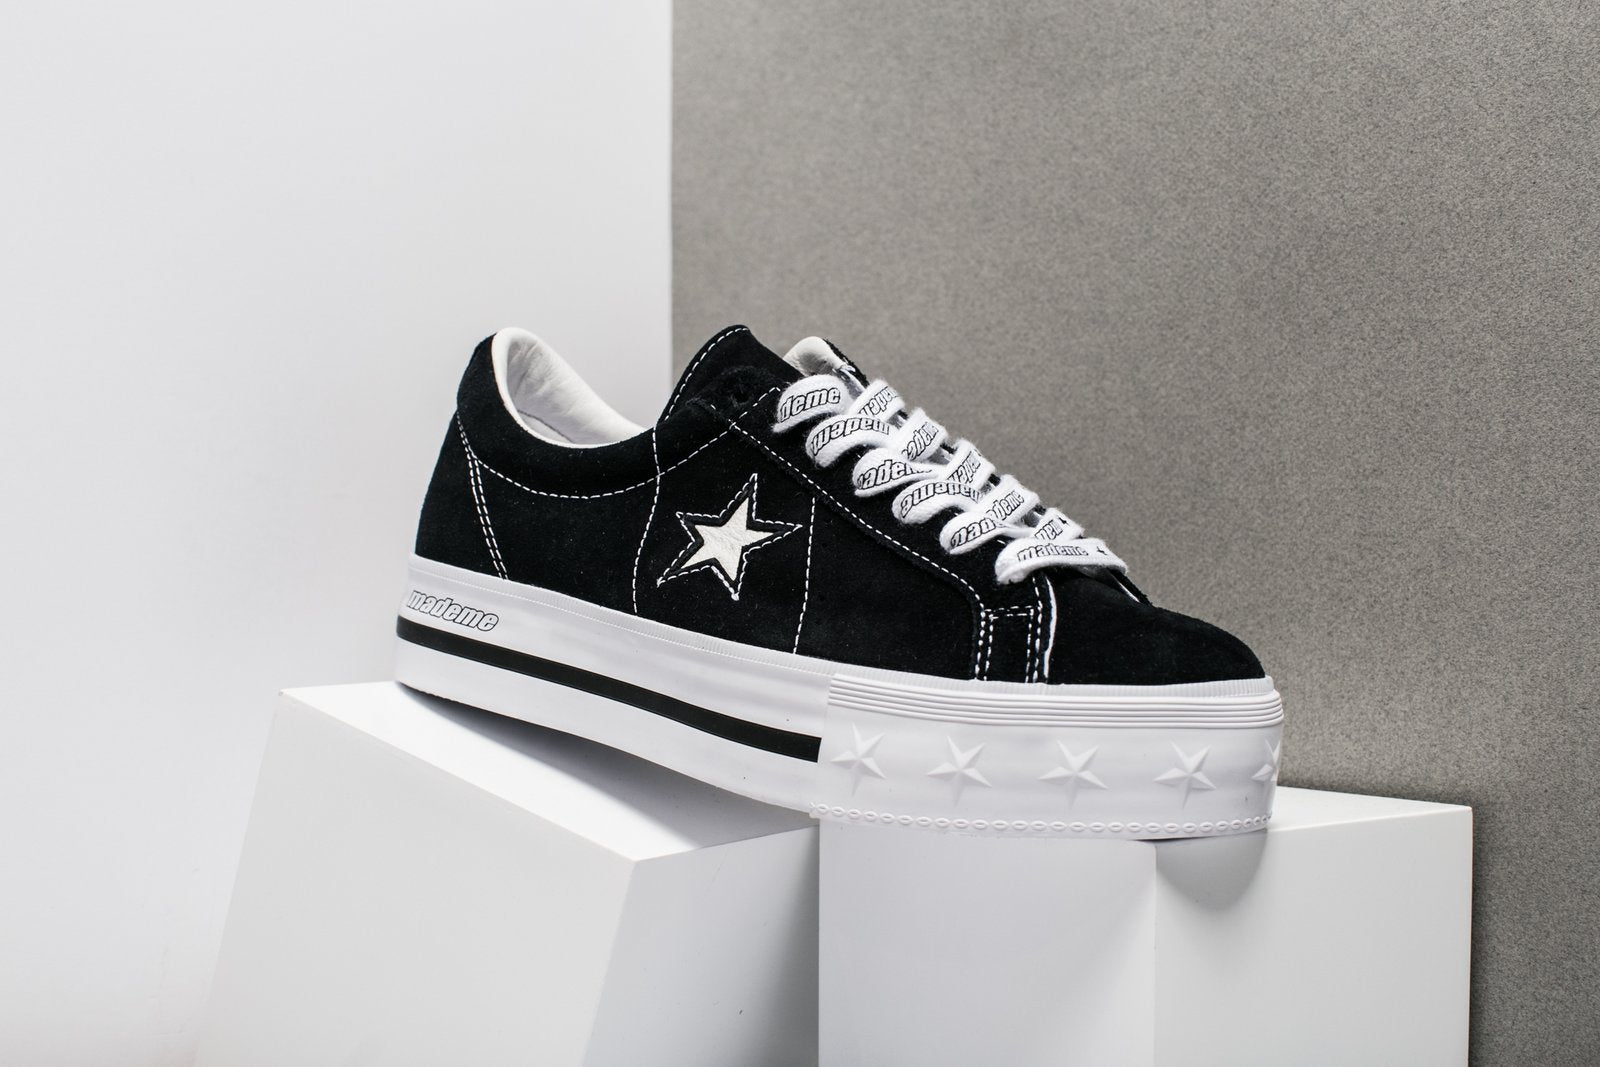 8cd3400013a65a CONVERSE X MADEME ONE STAR PLATFORM OX - Oneness Boutique